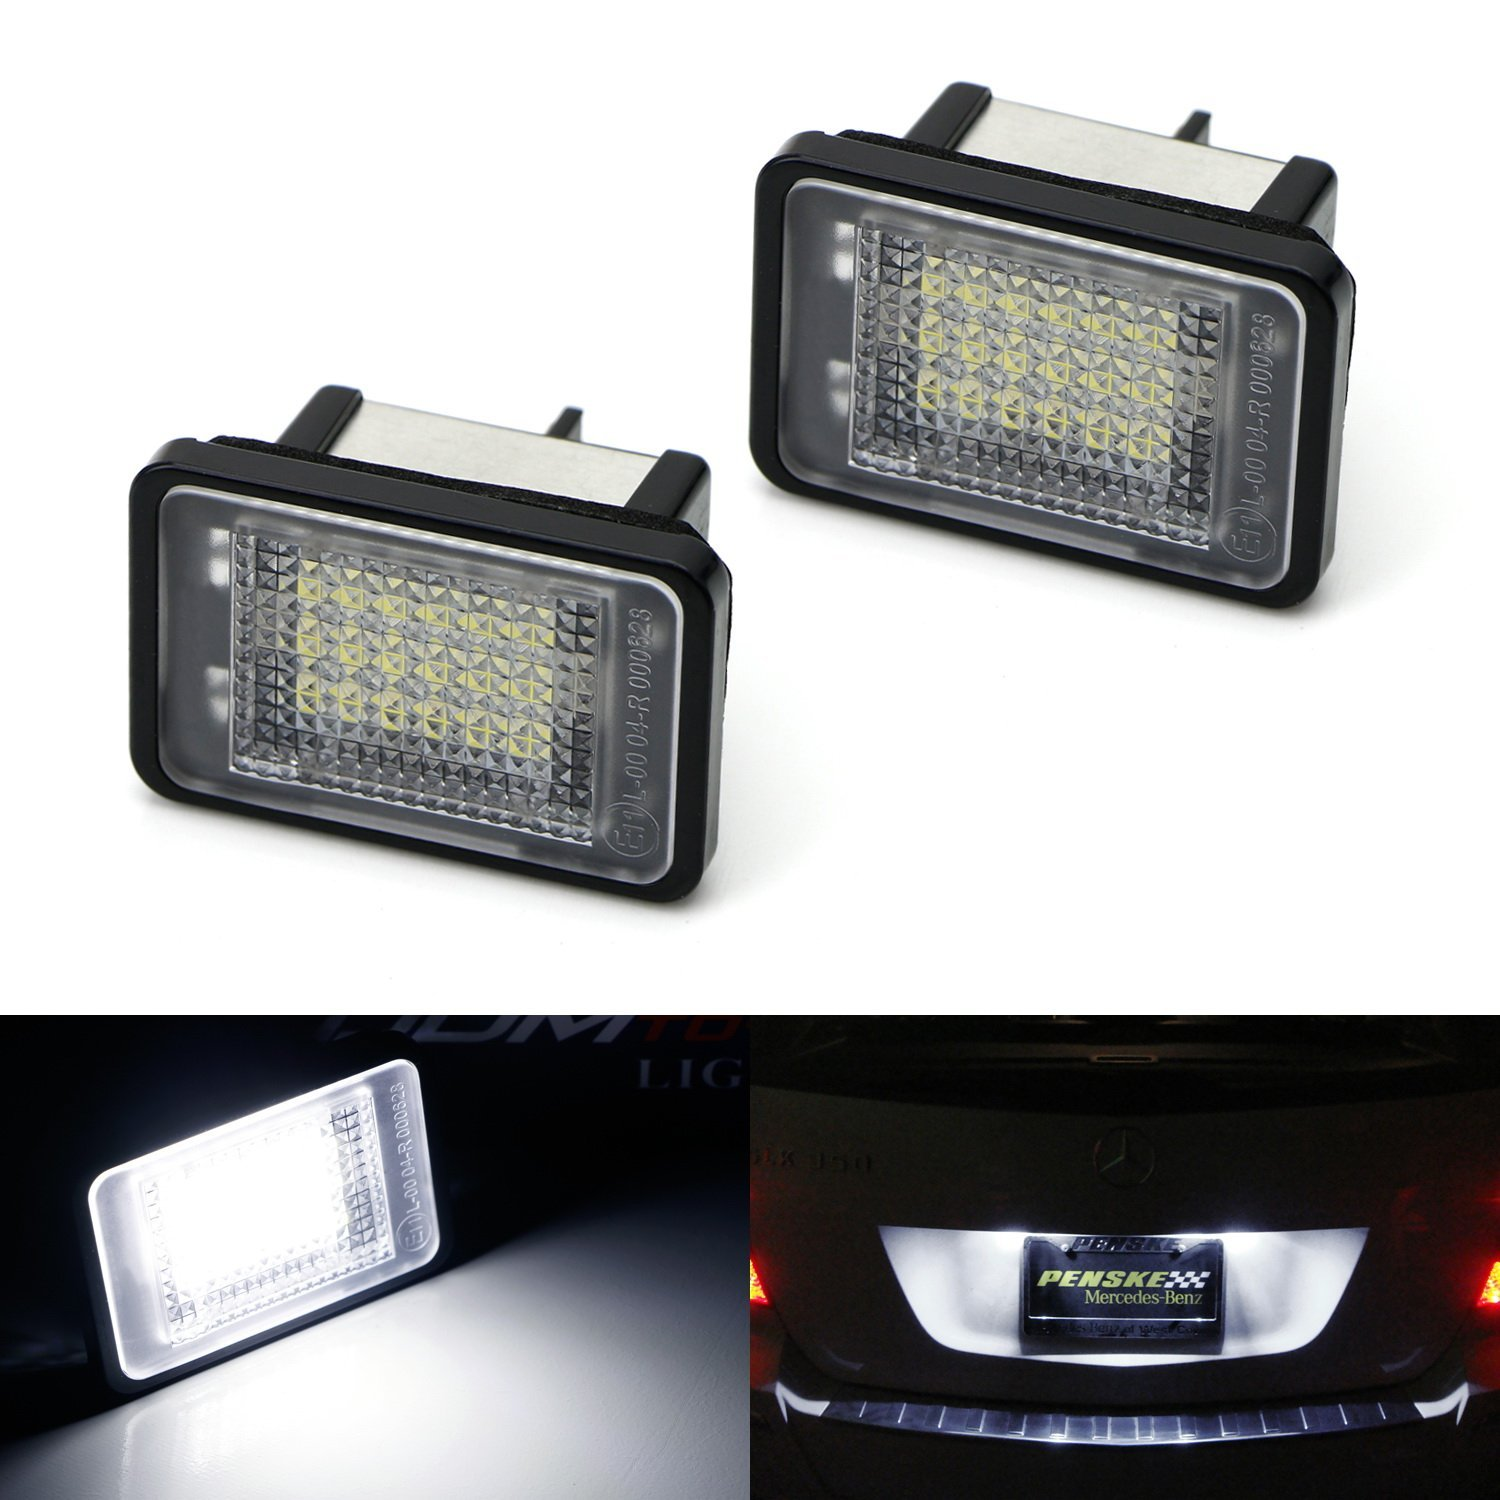 iJDMTOY (2) Xenon White CAN-bus OEM-Replace 18-SMD 3W LED License Plate Lights Assembly For 2010-2012 Mercedes X204 GLK-Class